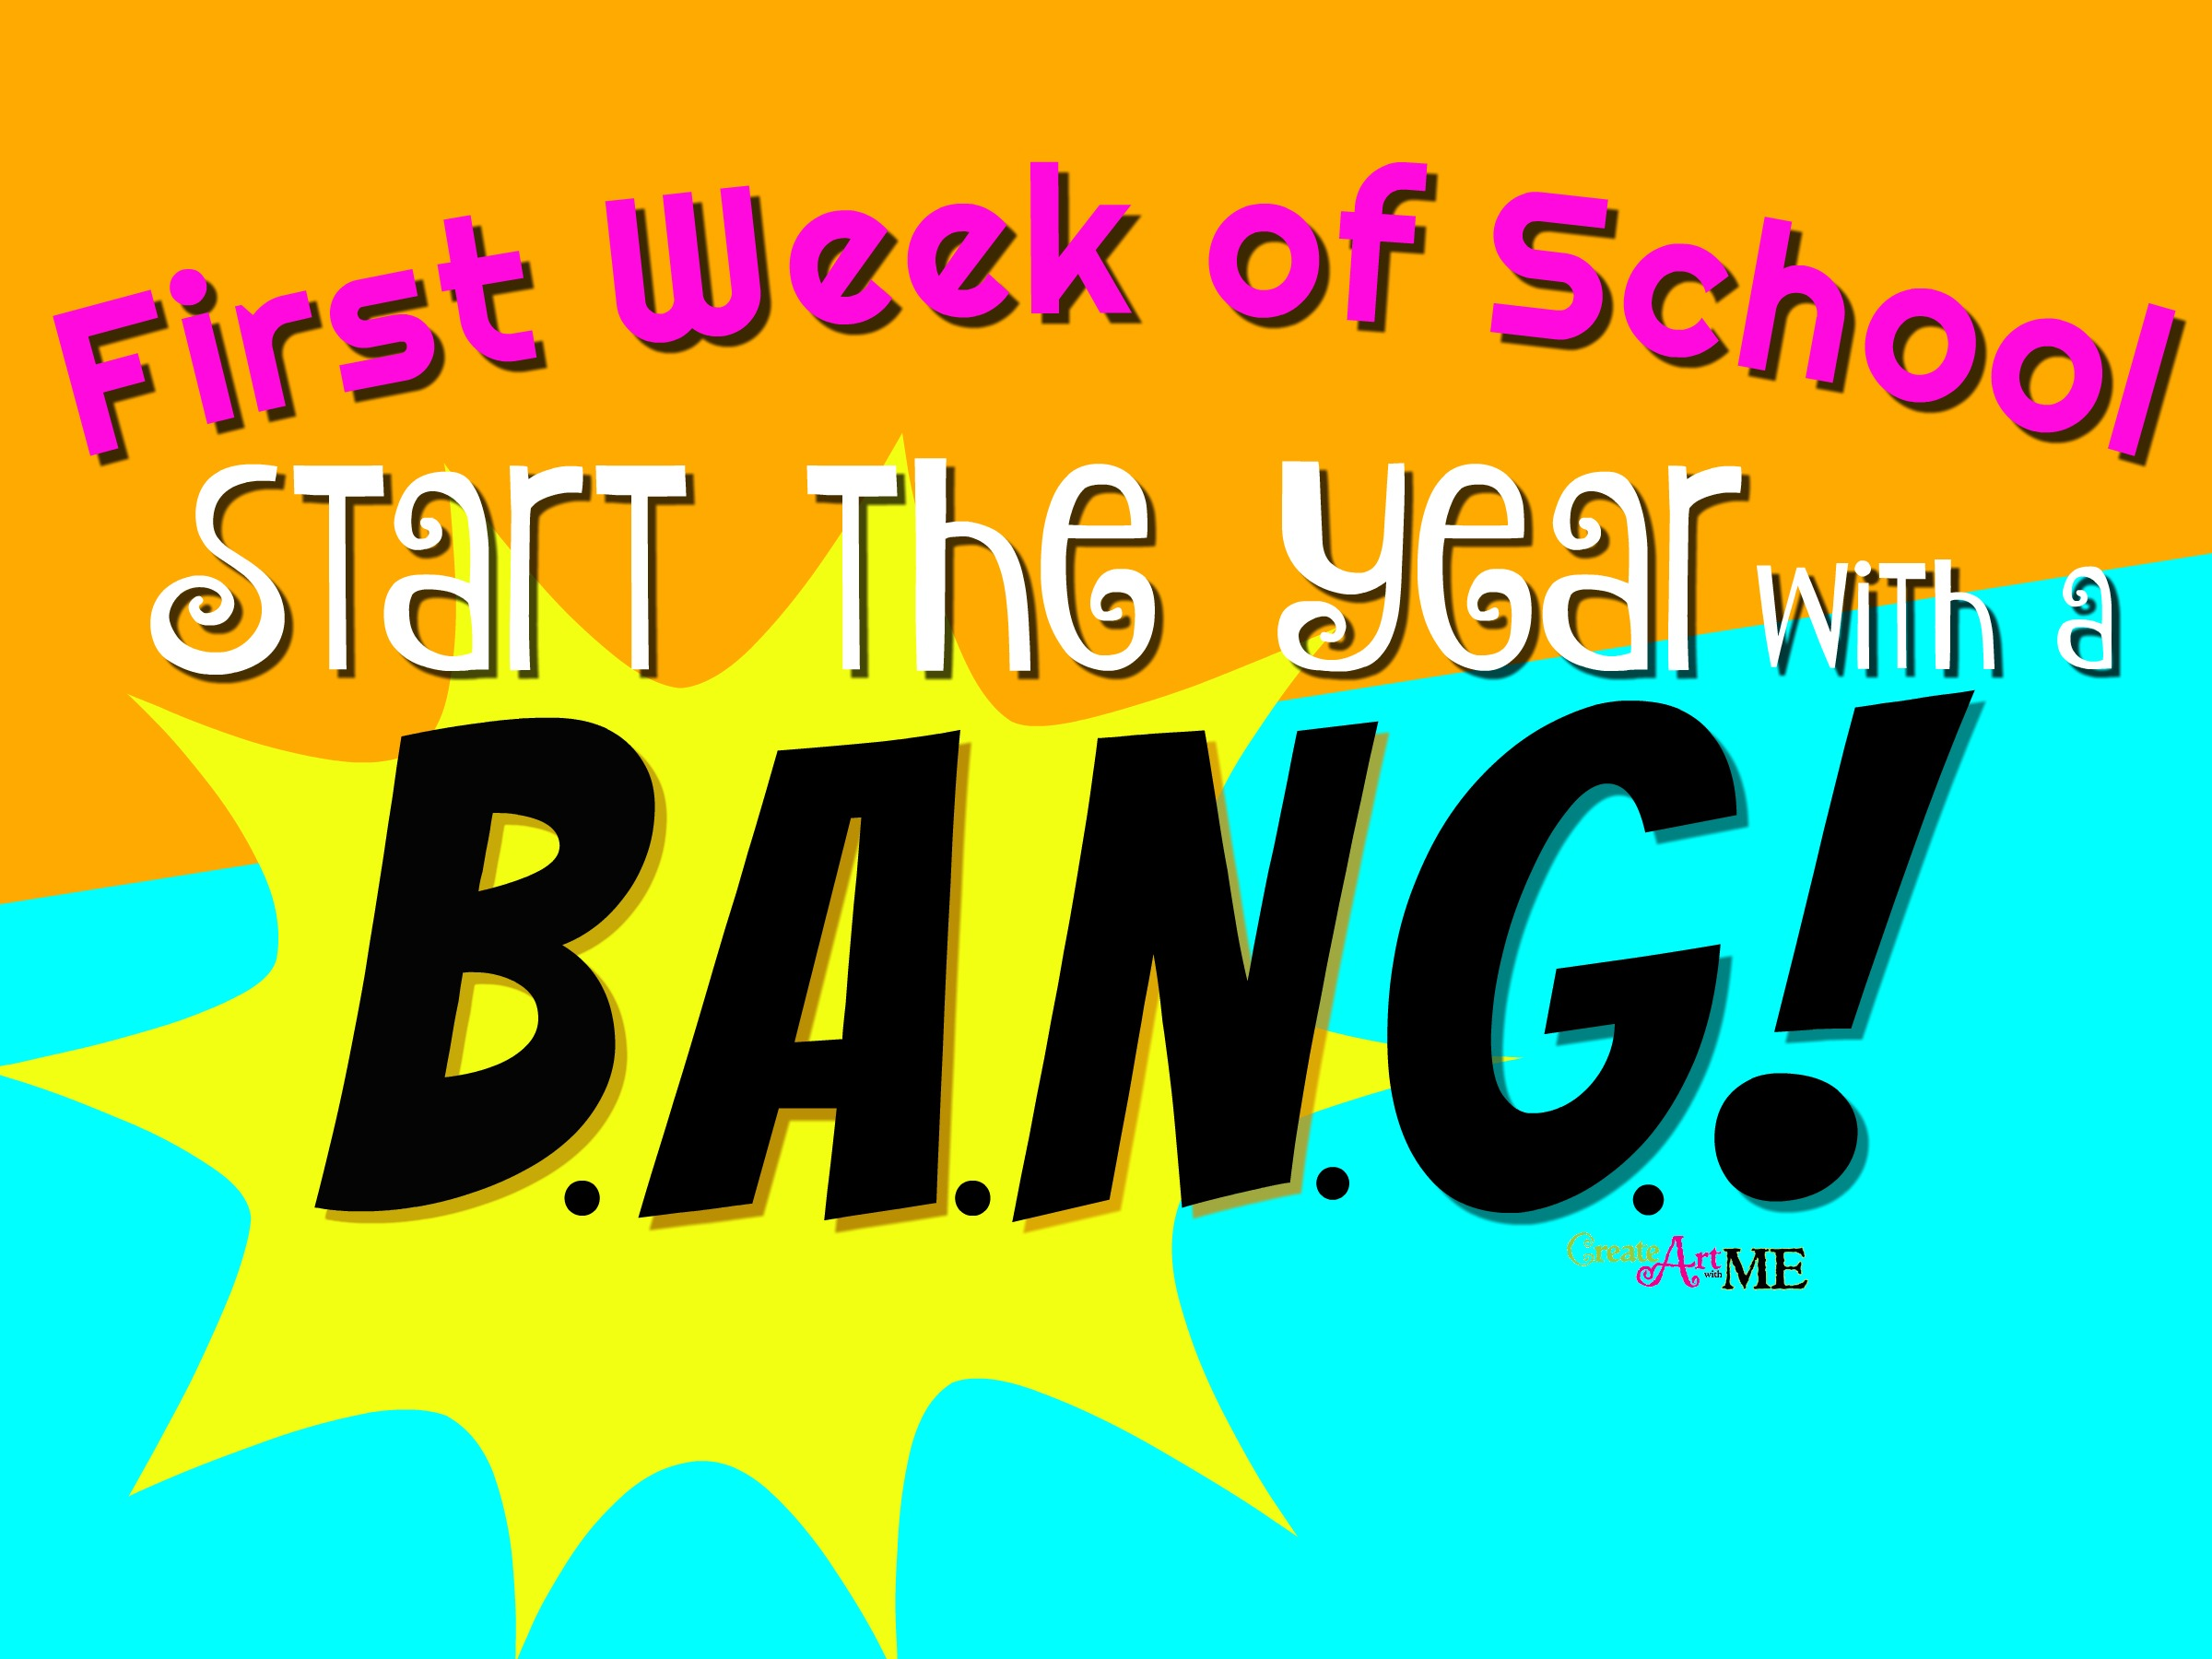 hight resolution of First Week of School - Start the Year with a BANG! - Create Art with ME